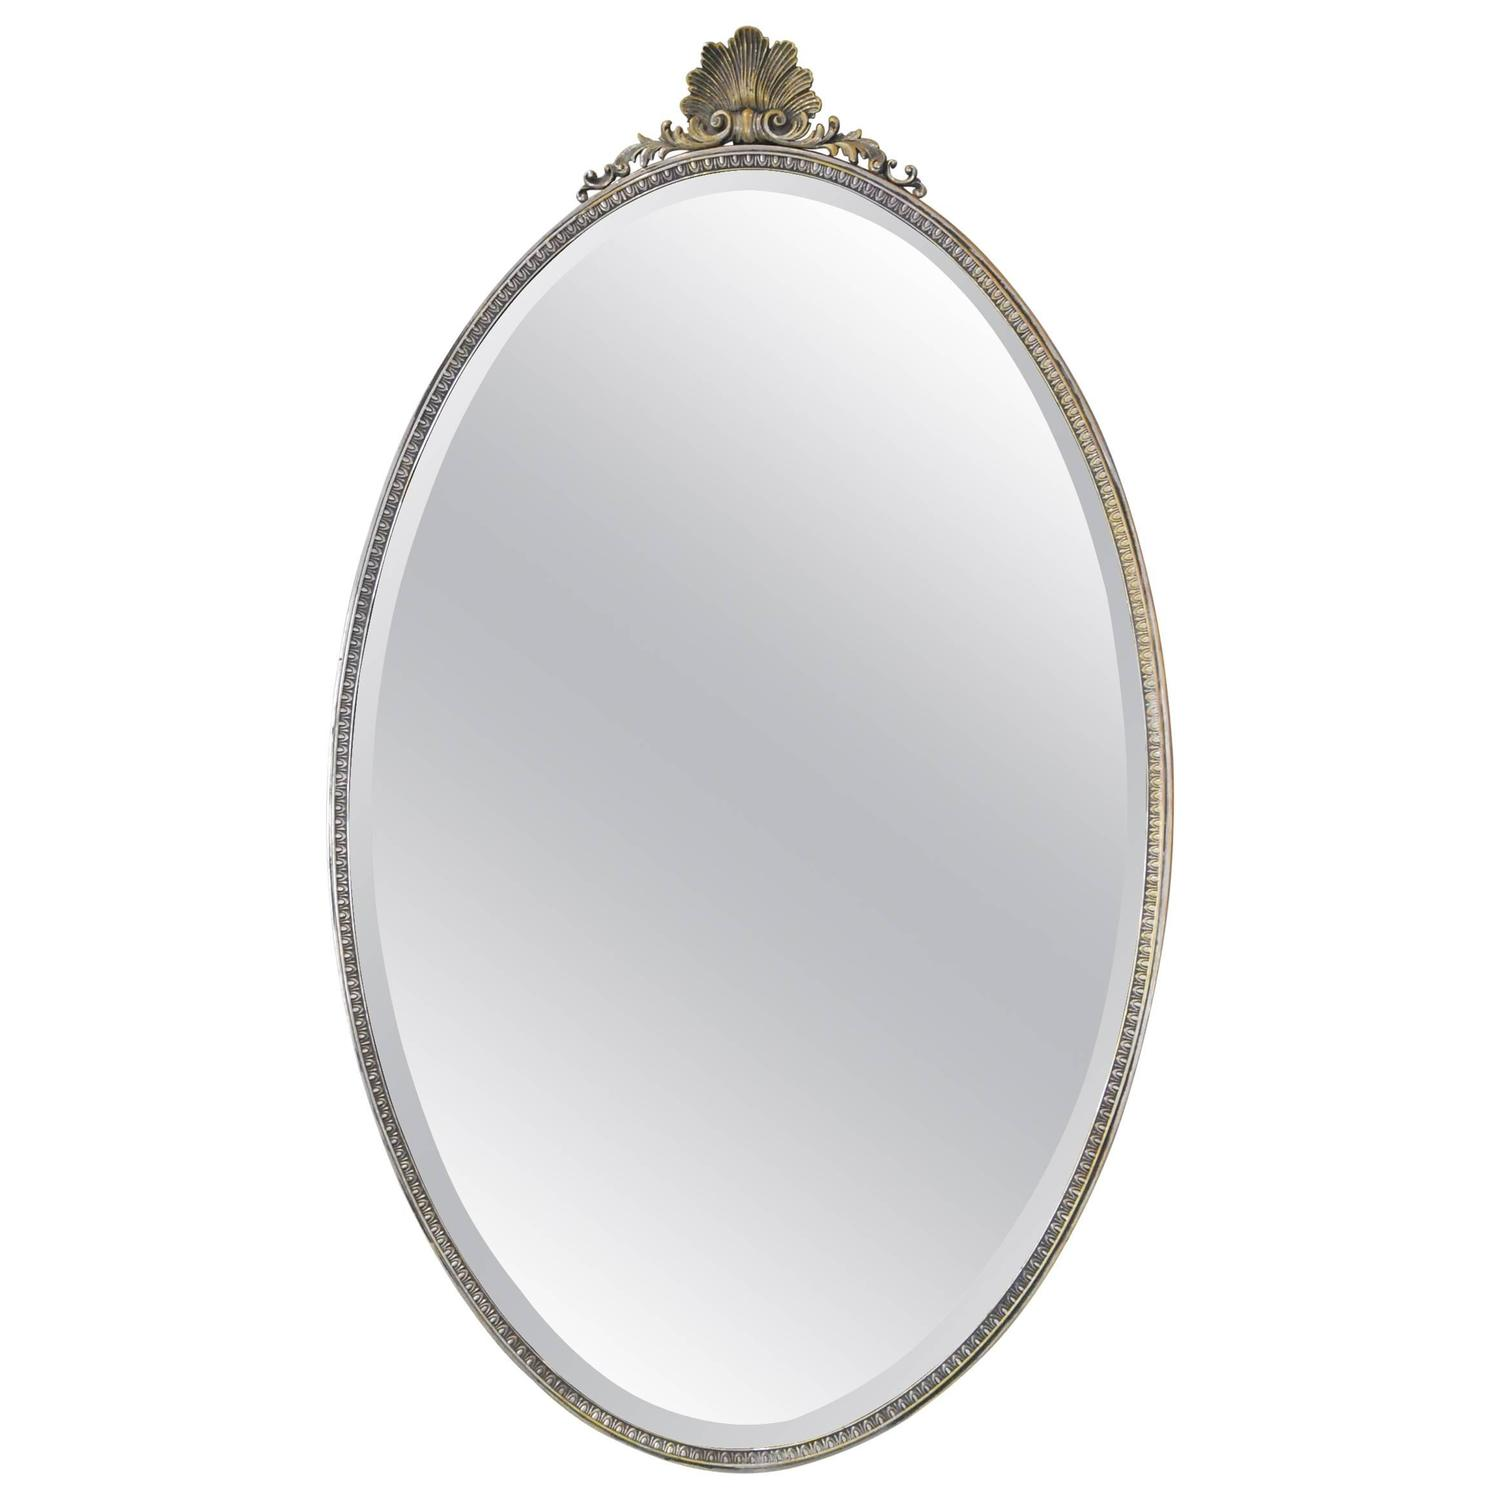 19th century french solid brass oval mirror in silver for Oval mirror canada